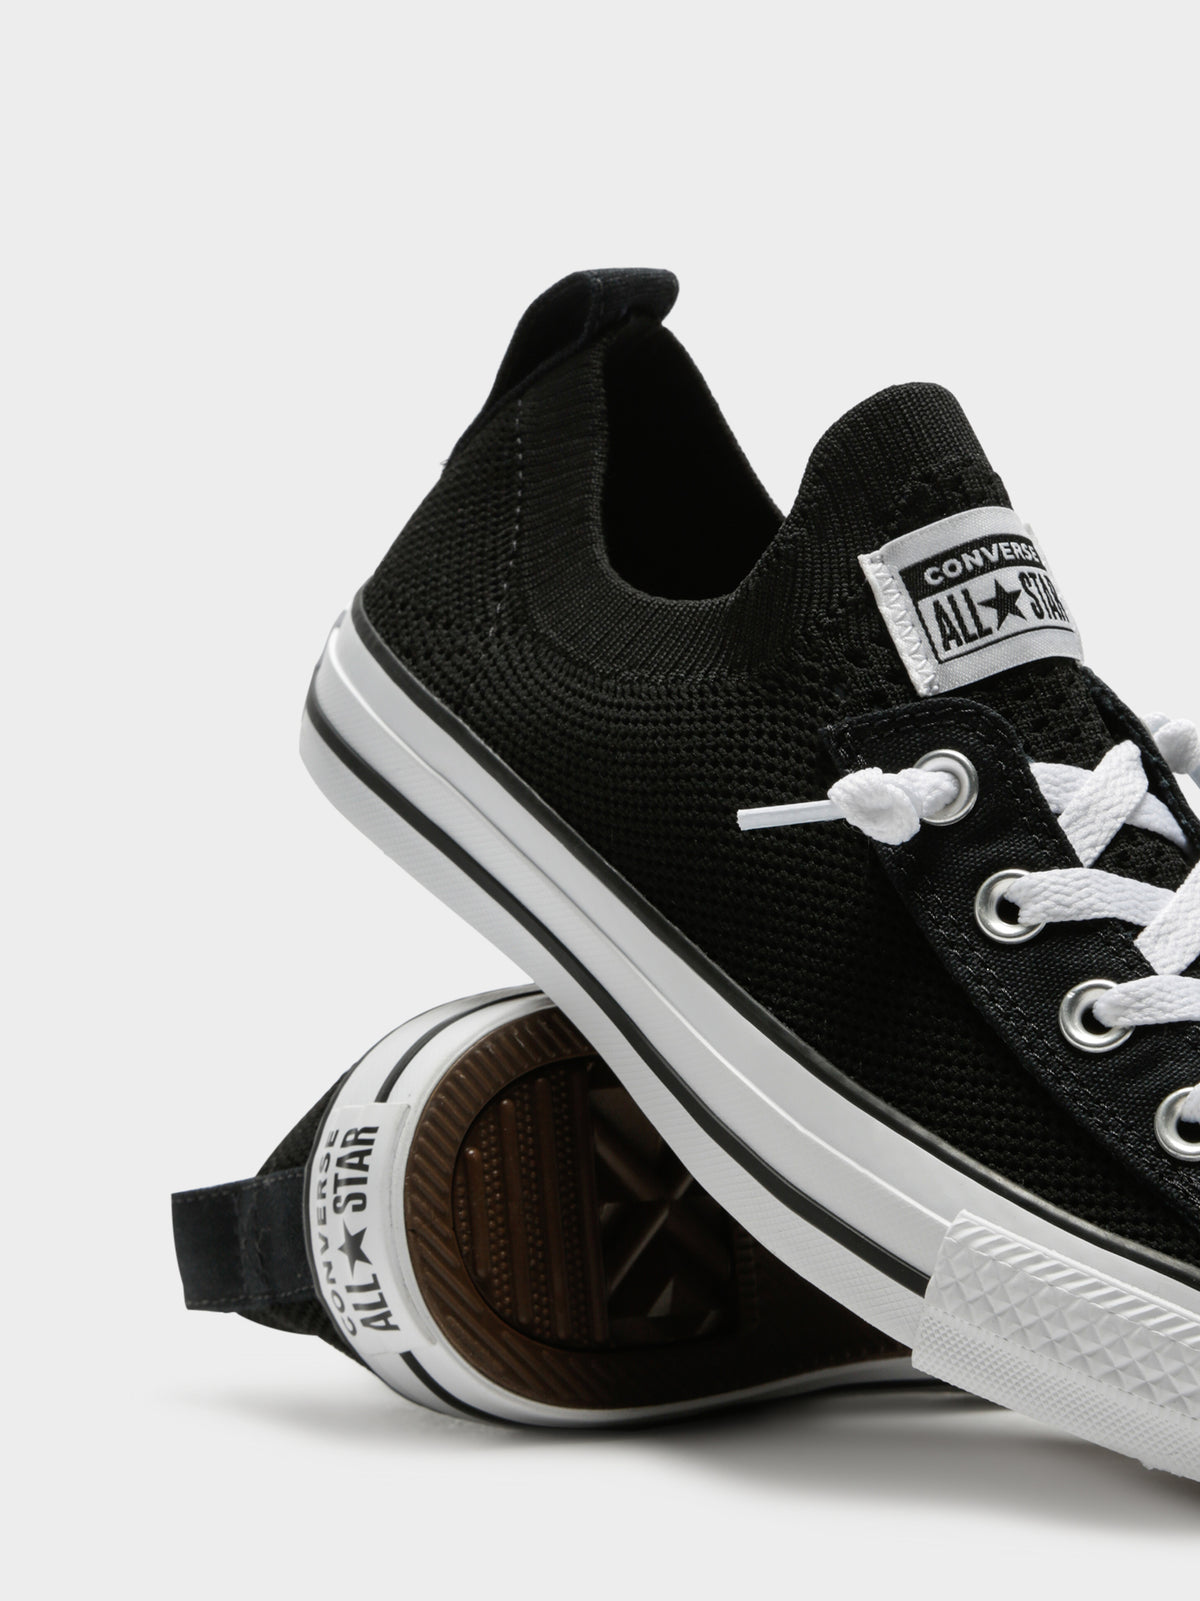 Chuck Taylor All Star Shoreline Knit Slip-On Sneakers in Black